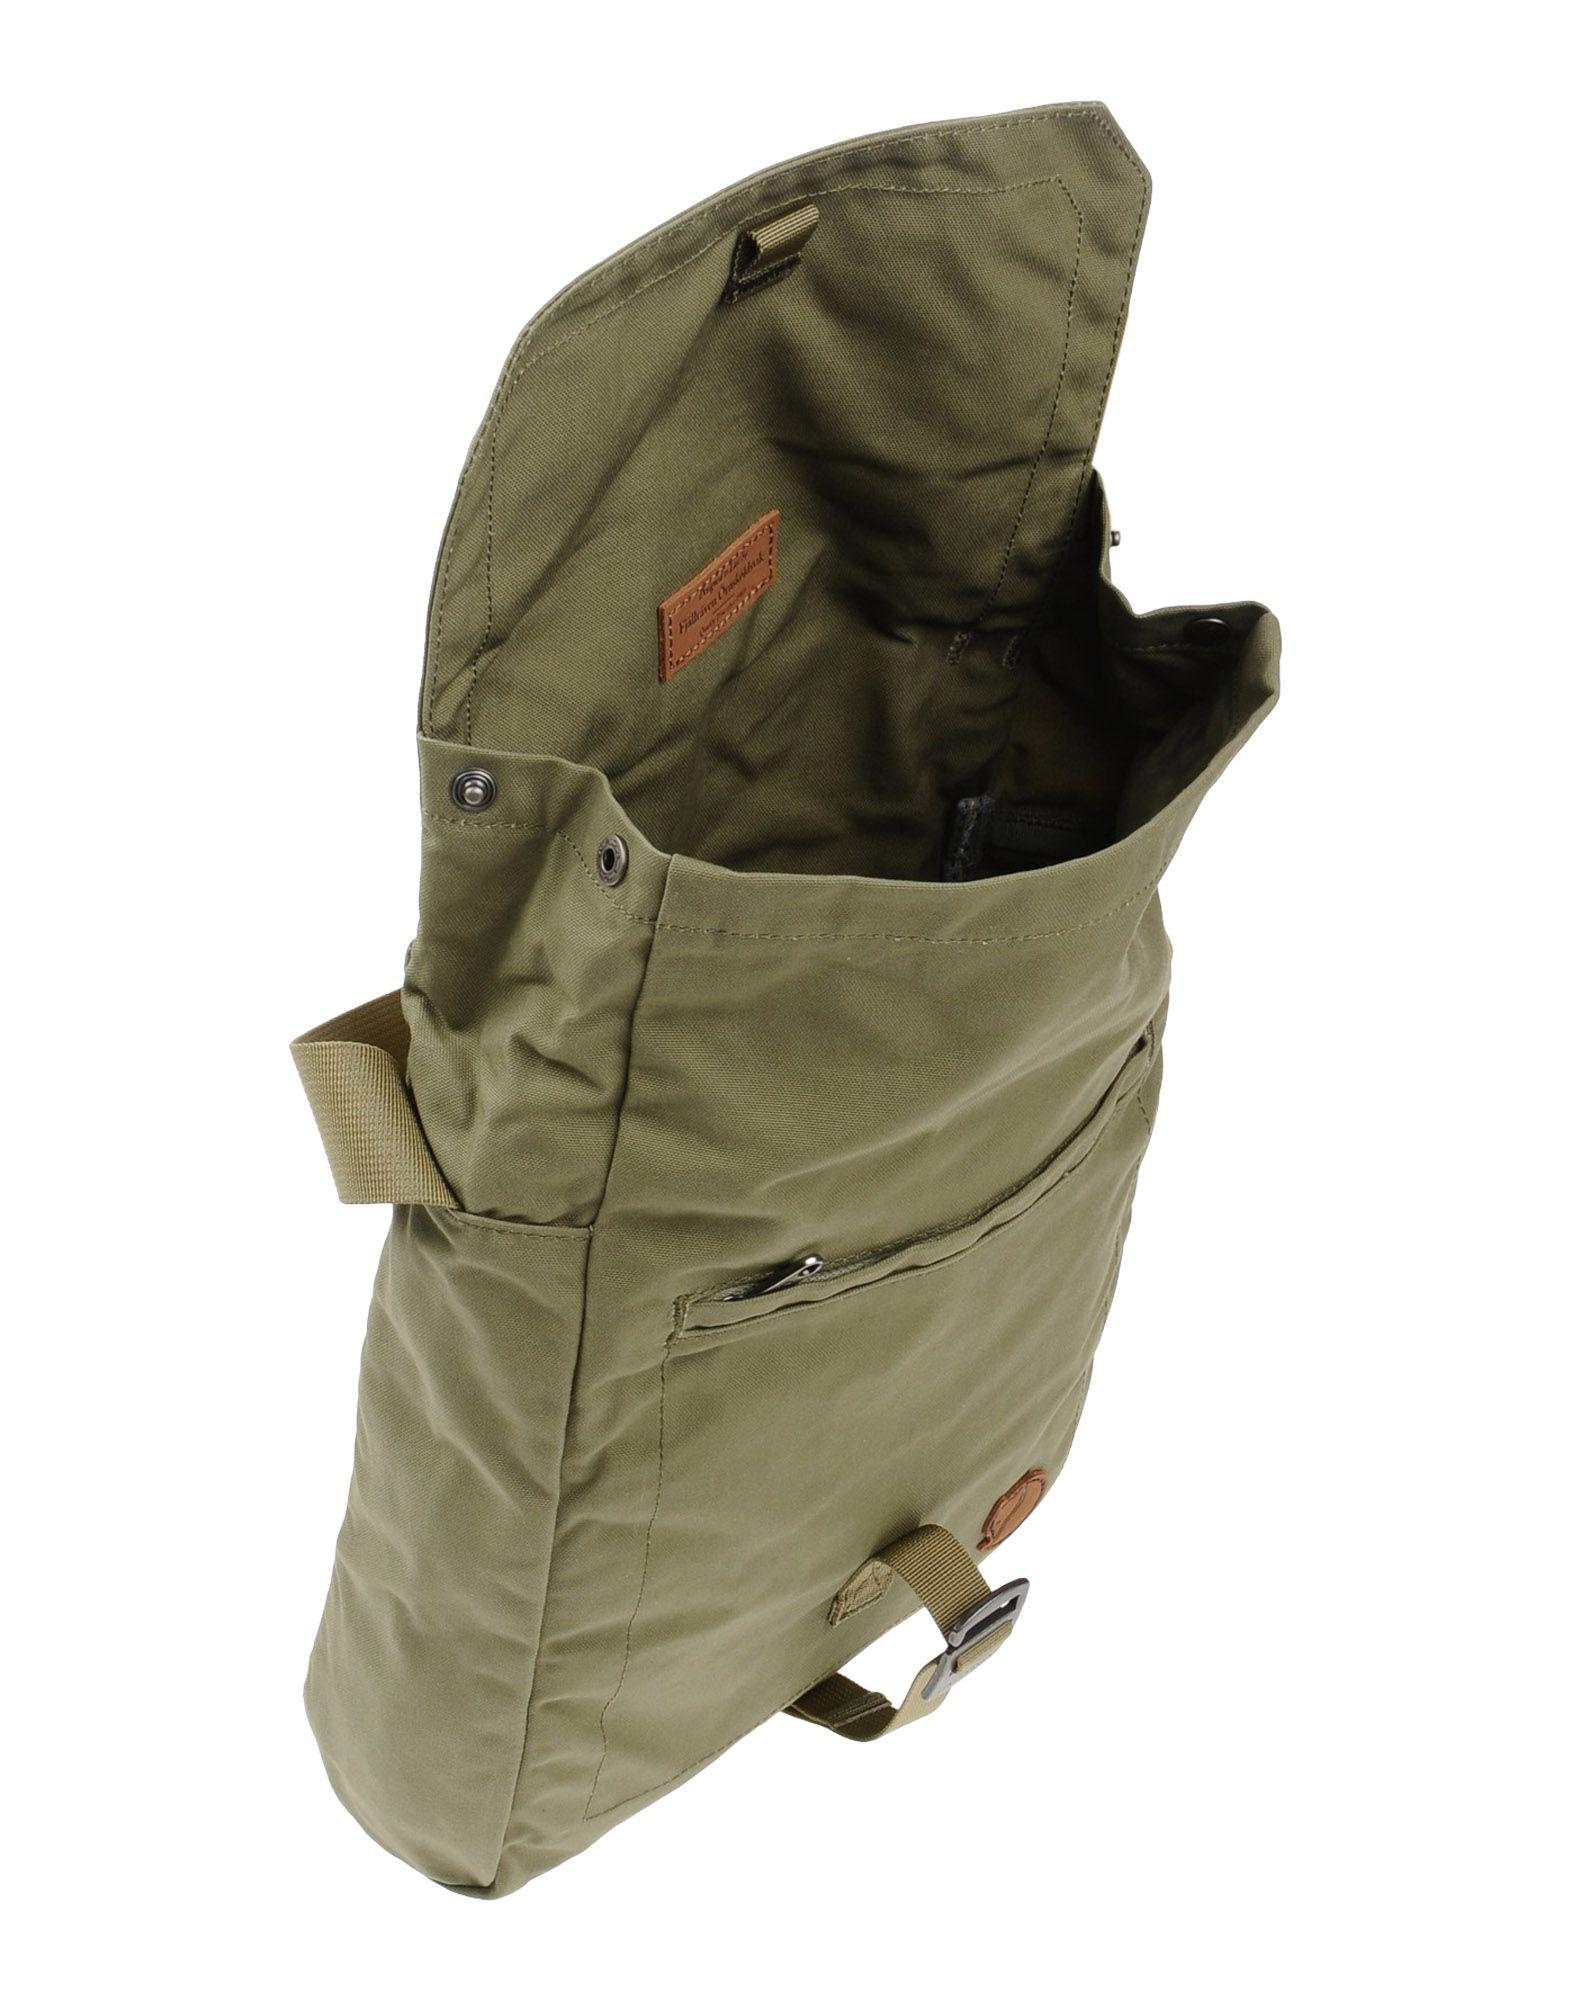 Fjallraven Synthetic Cross-body Bag in Military Green (Green)